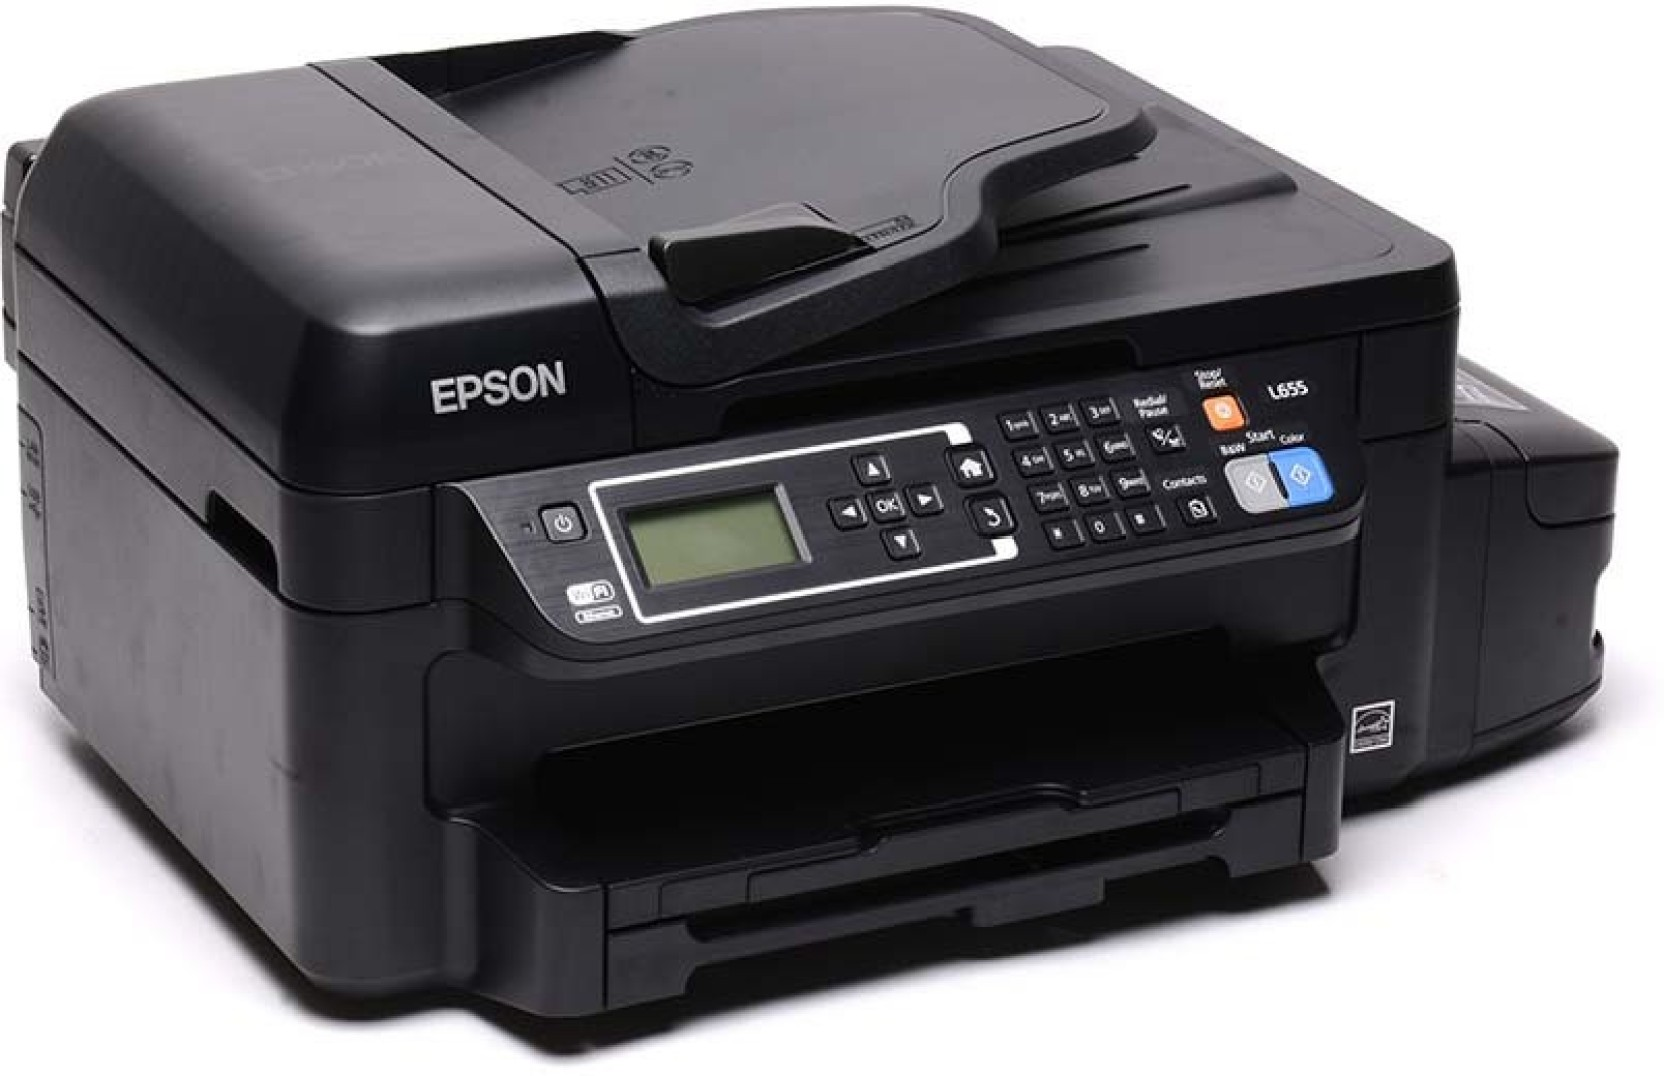 Epson L655 Multi-function Printer - Epson : Flipkart com